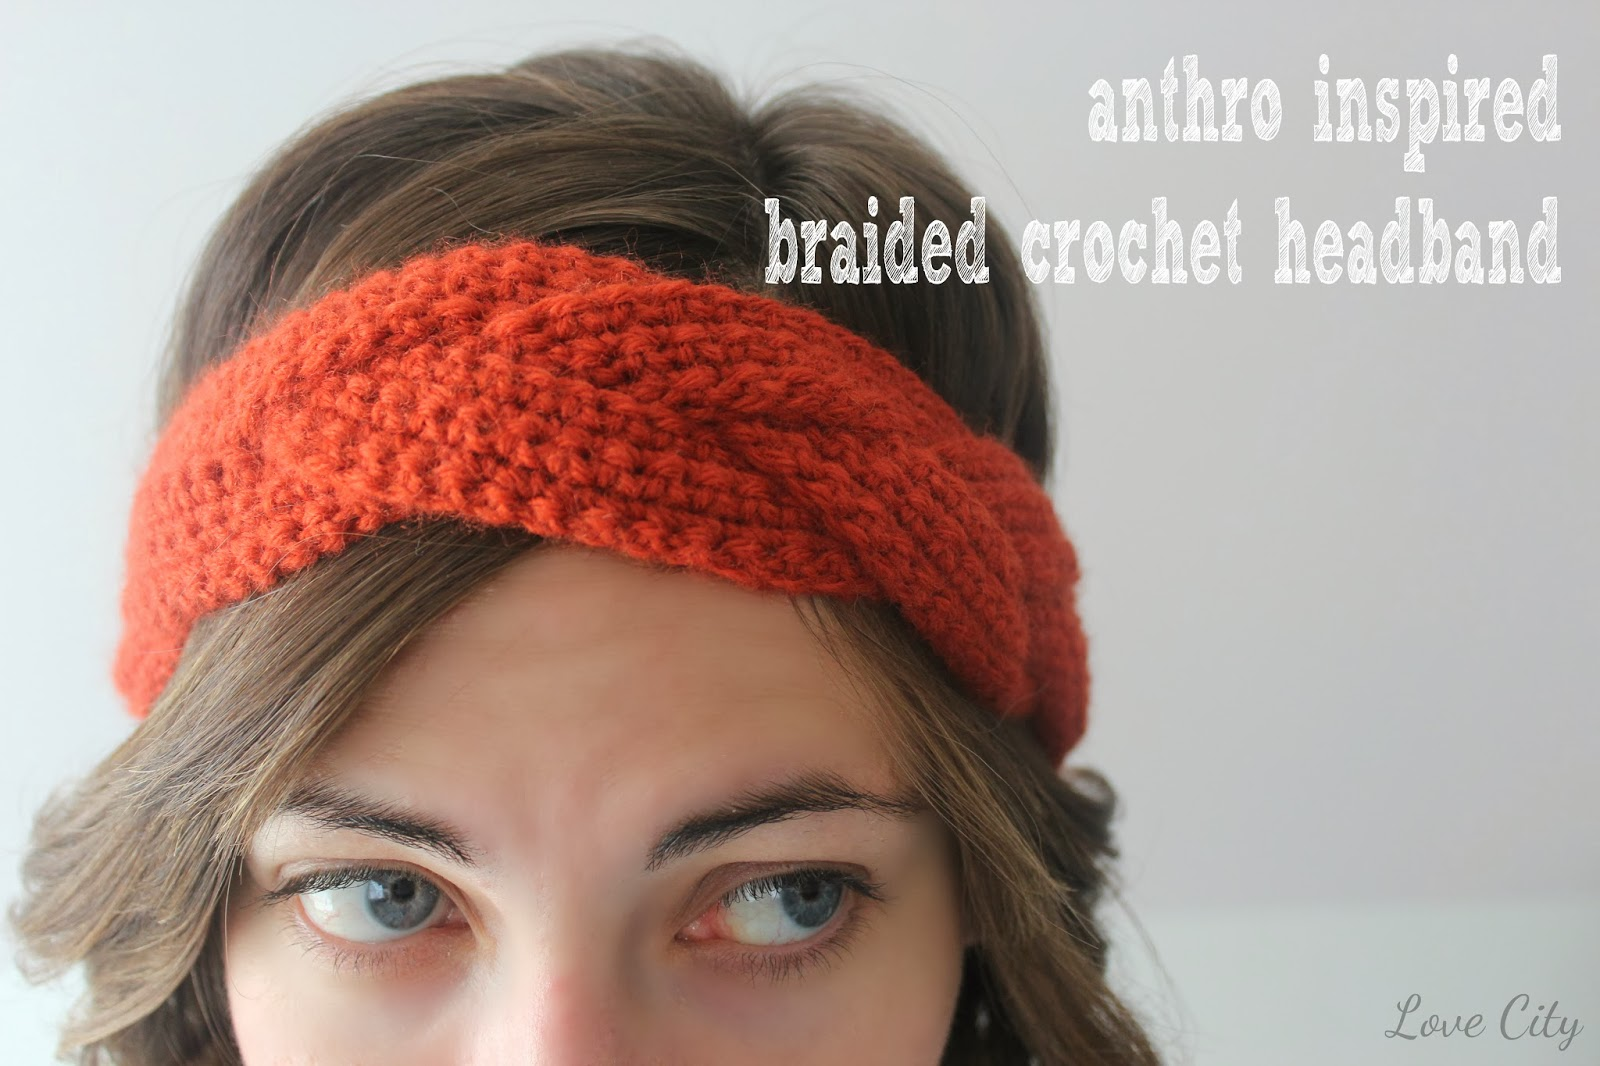 Crocheting A Headband : Love City: crochet love {anthro inspired braided headband}